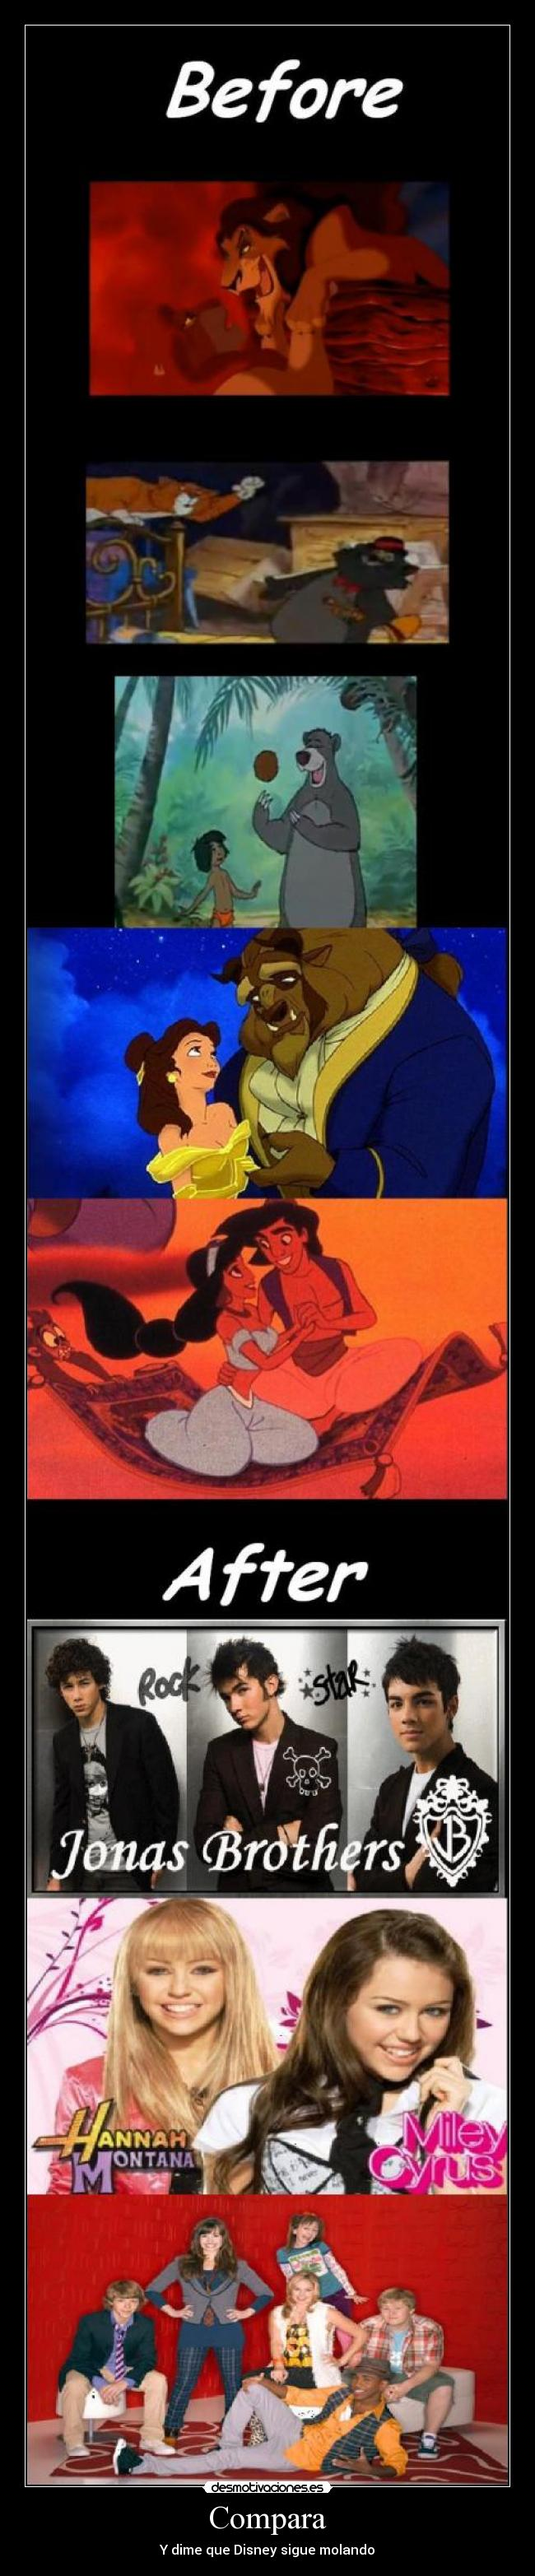 Compara - Y dime que Disney sigue molando